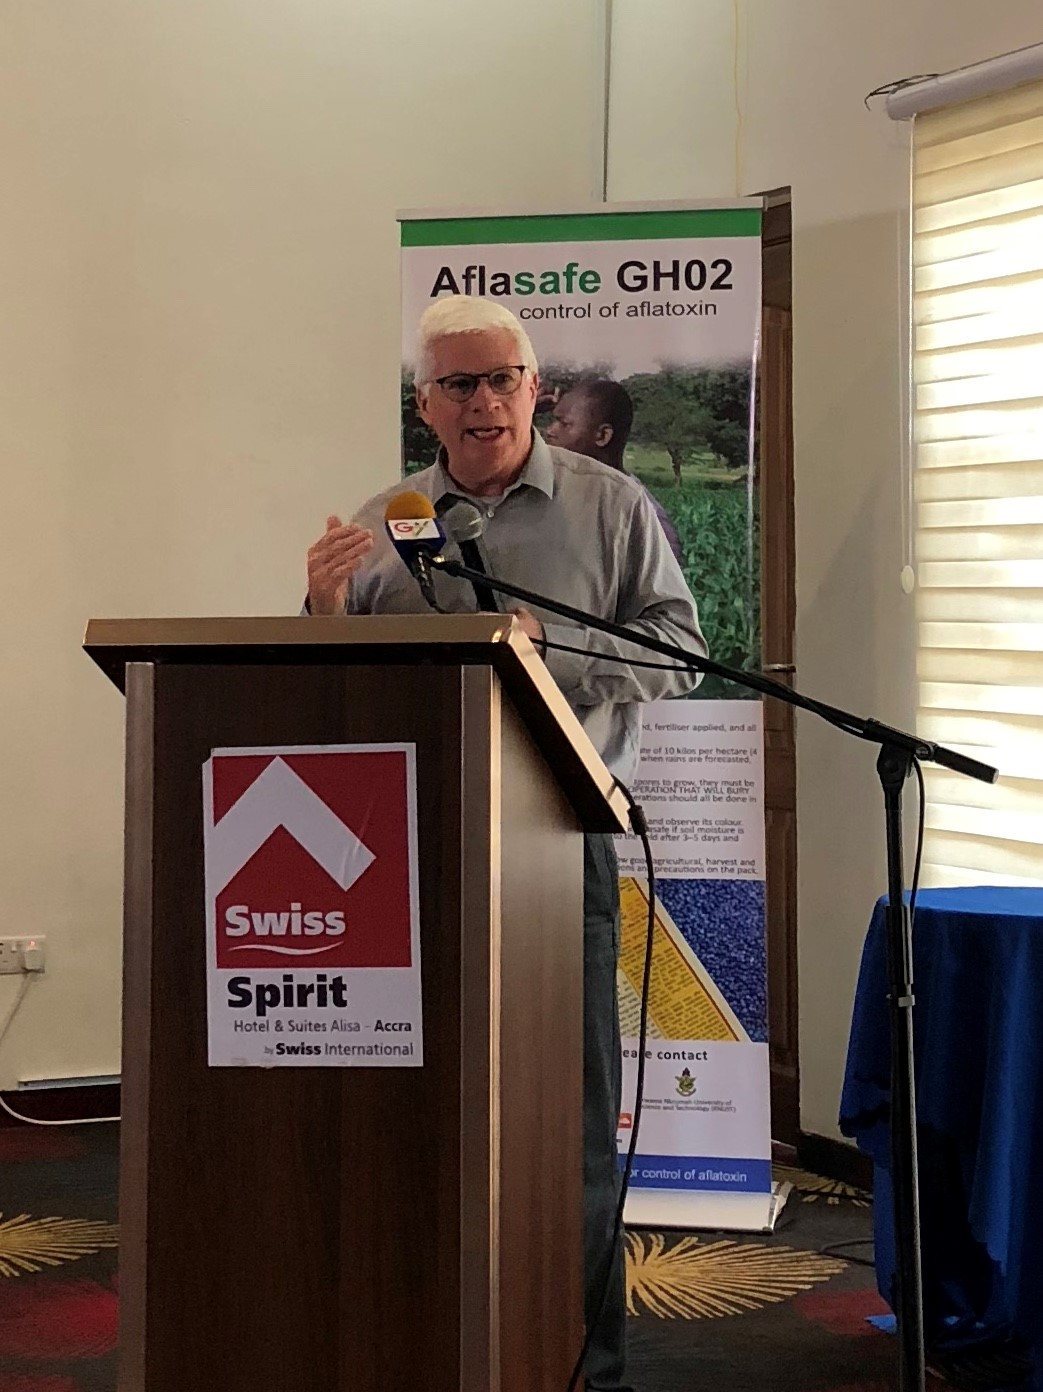 Aflasafe GH02 launched in Ghana